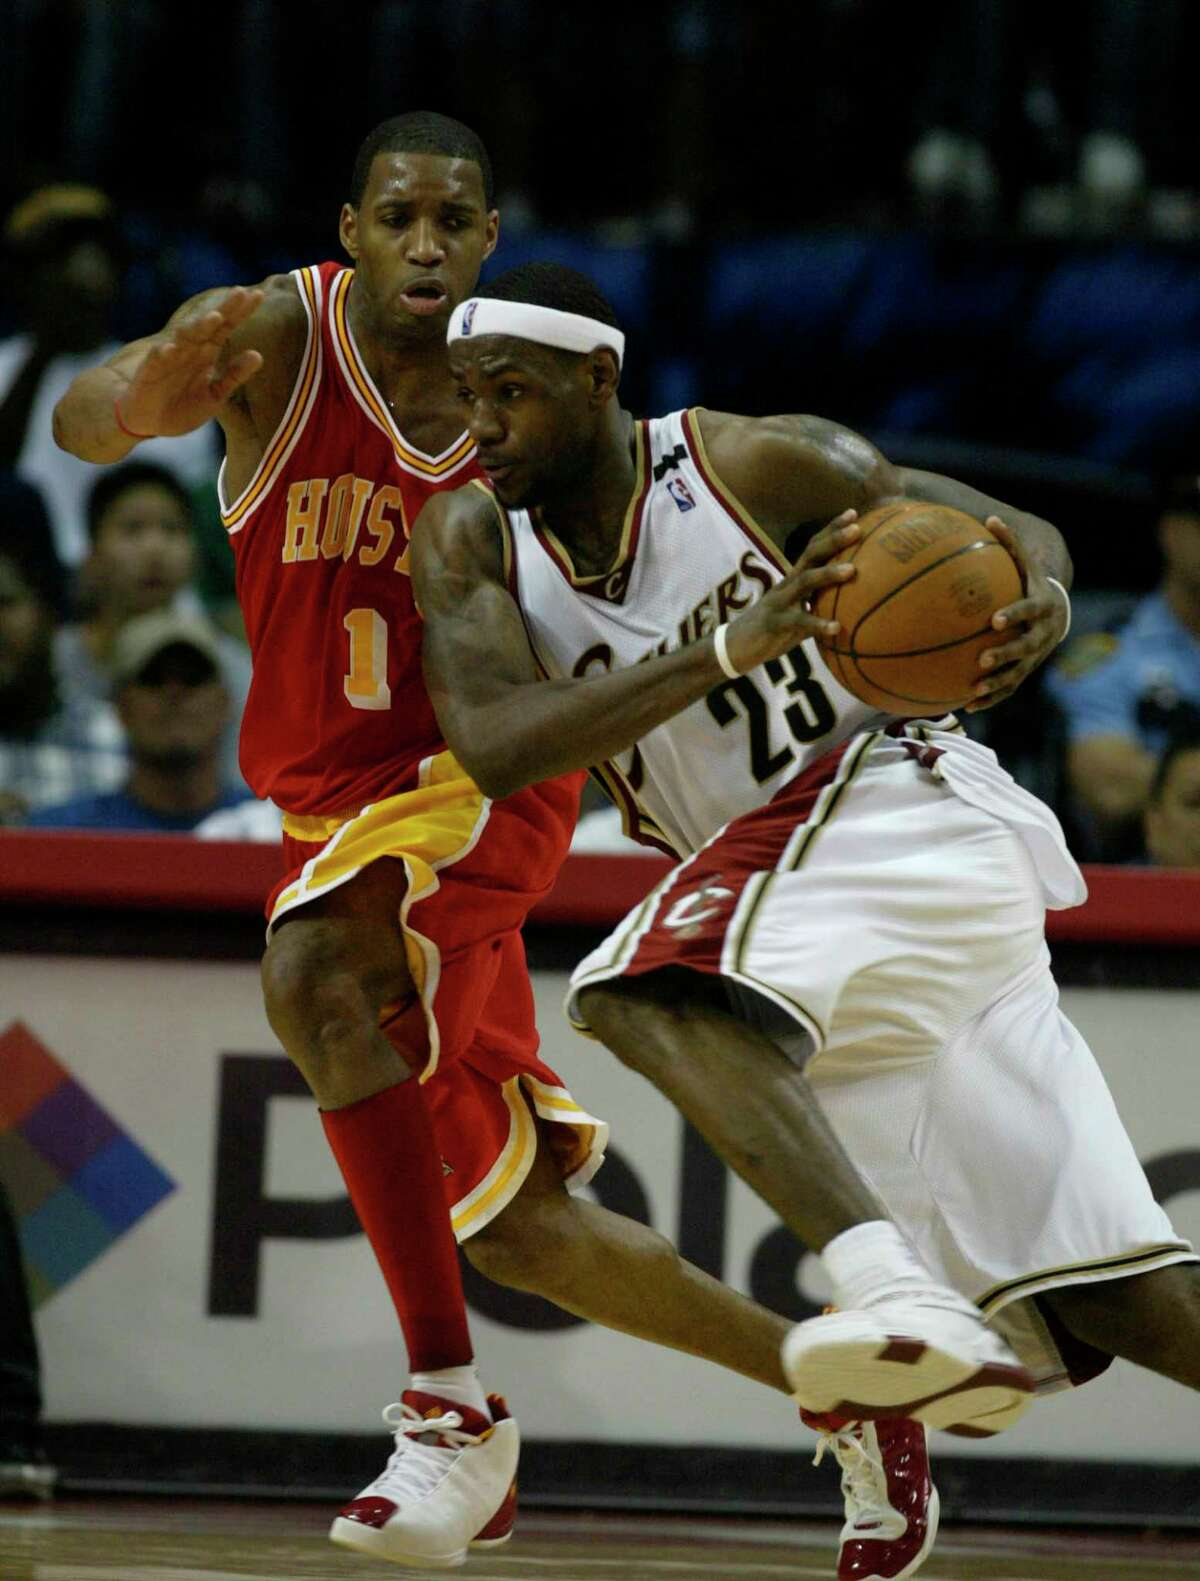 March 24, 2005: Rockets 99, Cavaliers 80 Points: 19 Rebounds: 4 Assists: 8